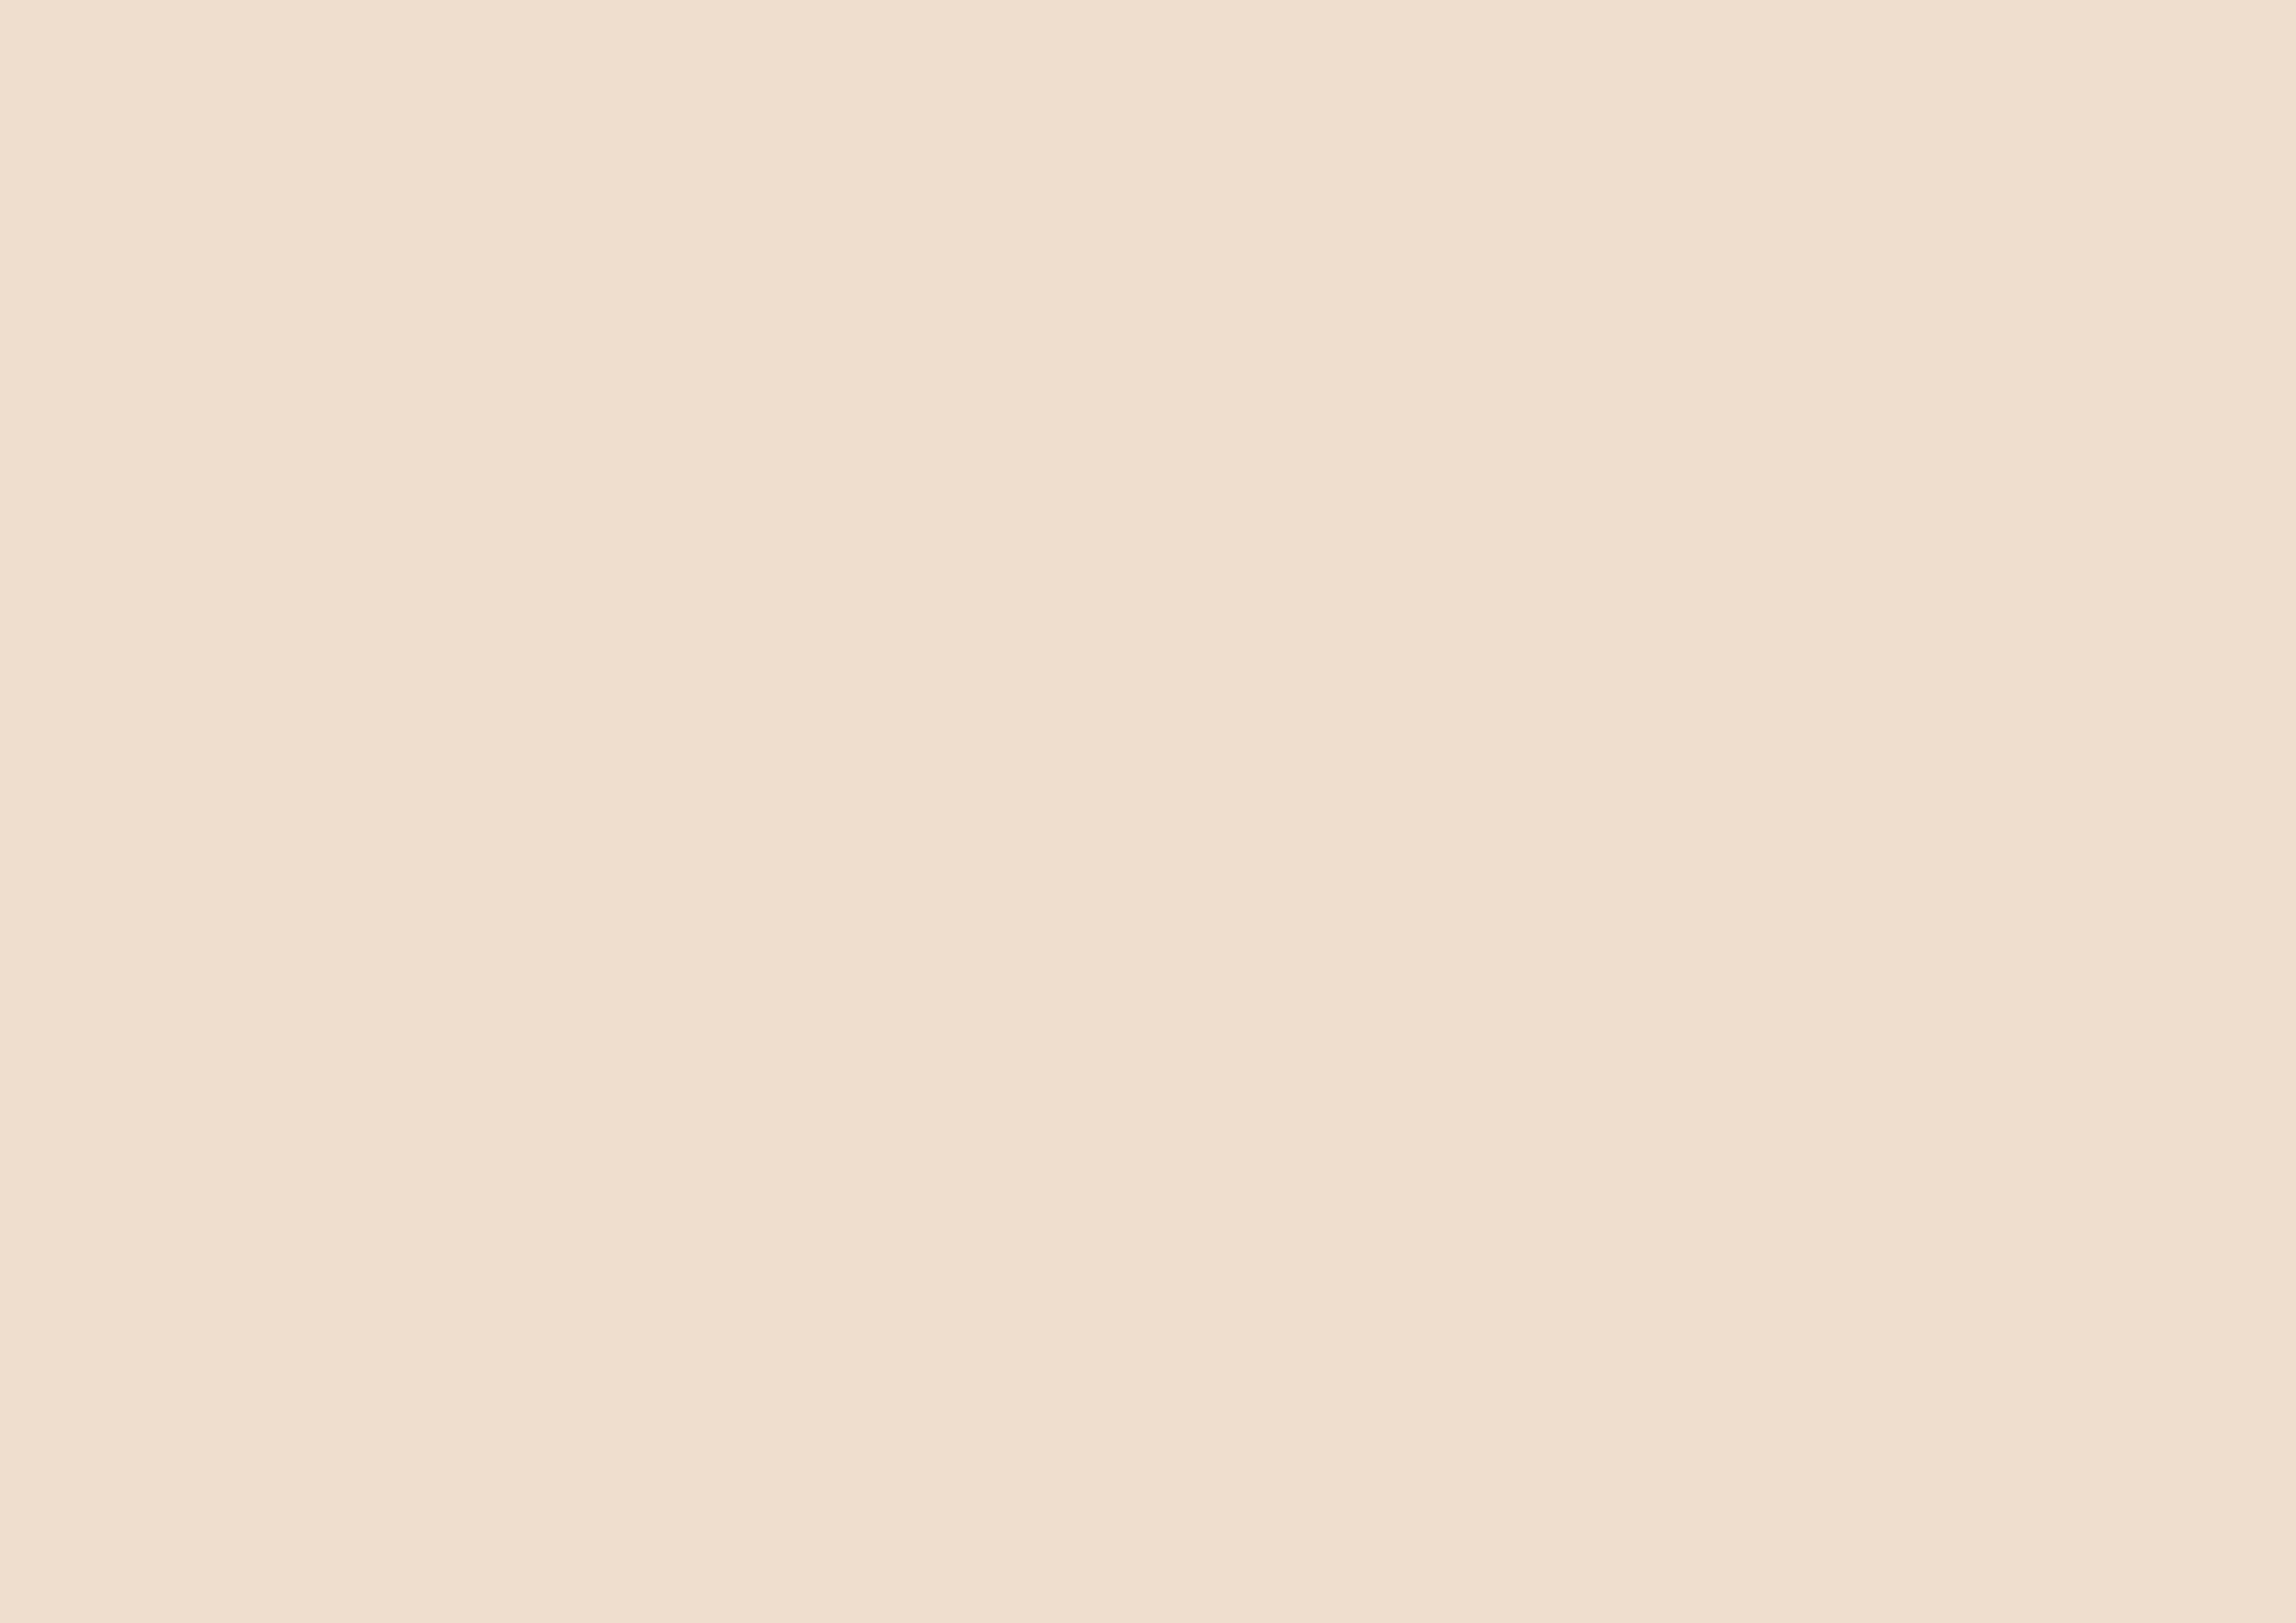 3508x2480 Almond Solid Color Background